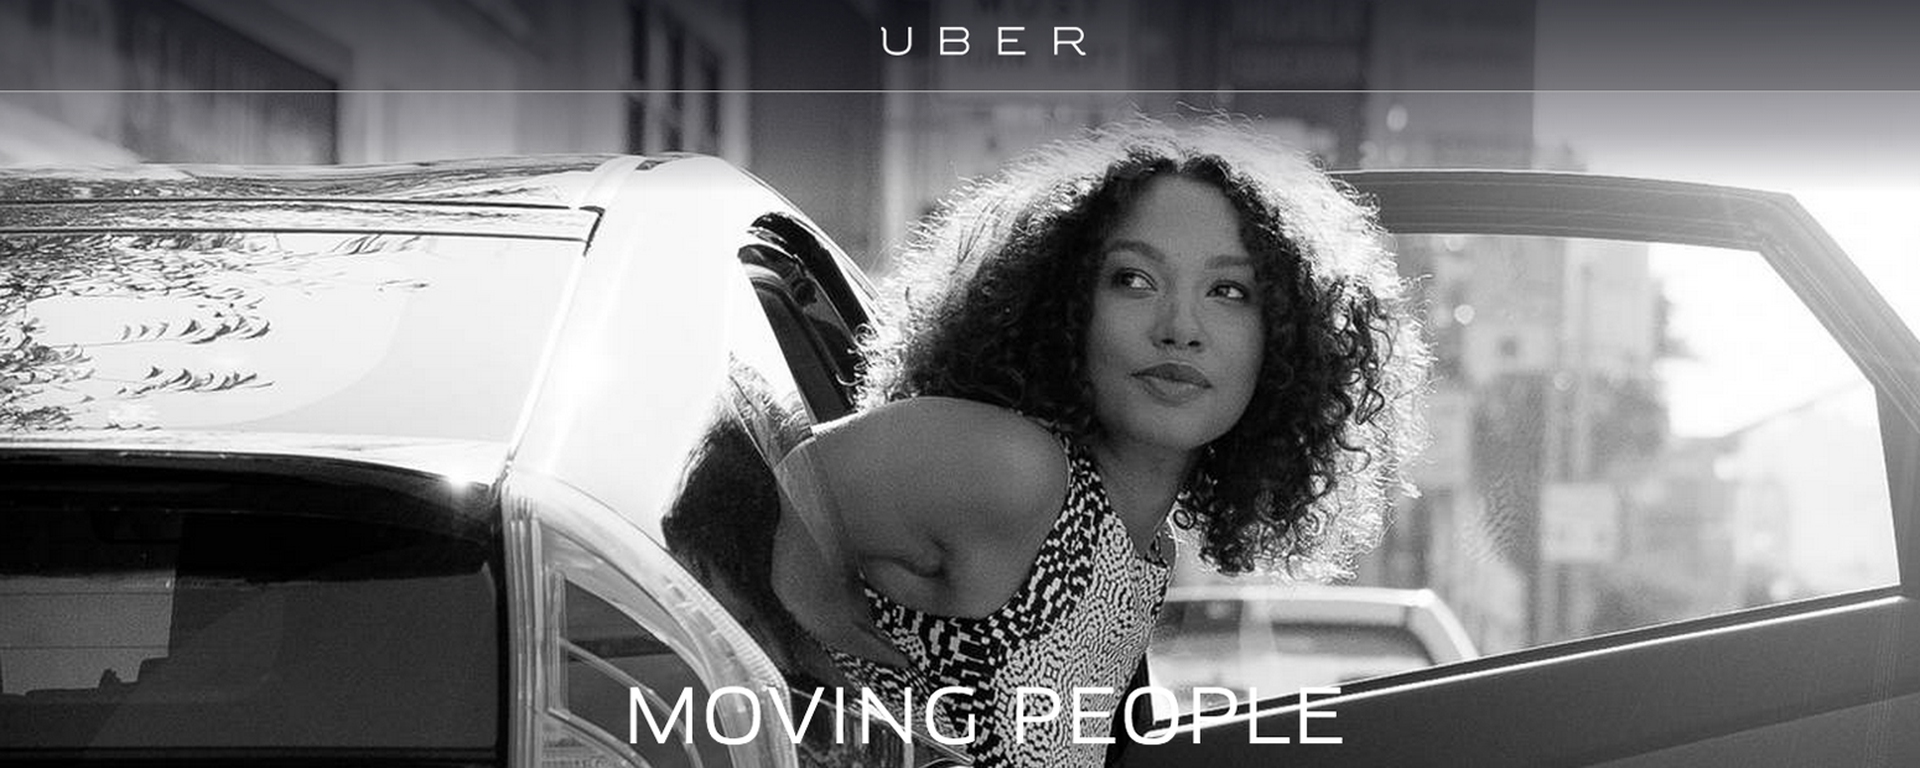 Uber - Transformative Opportunity in Tanzania Movemeback African opportunity cover image